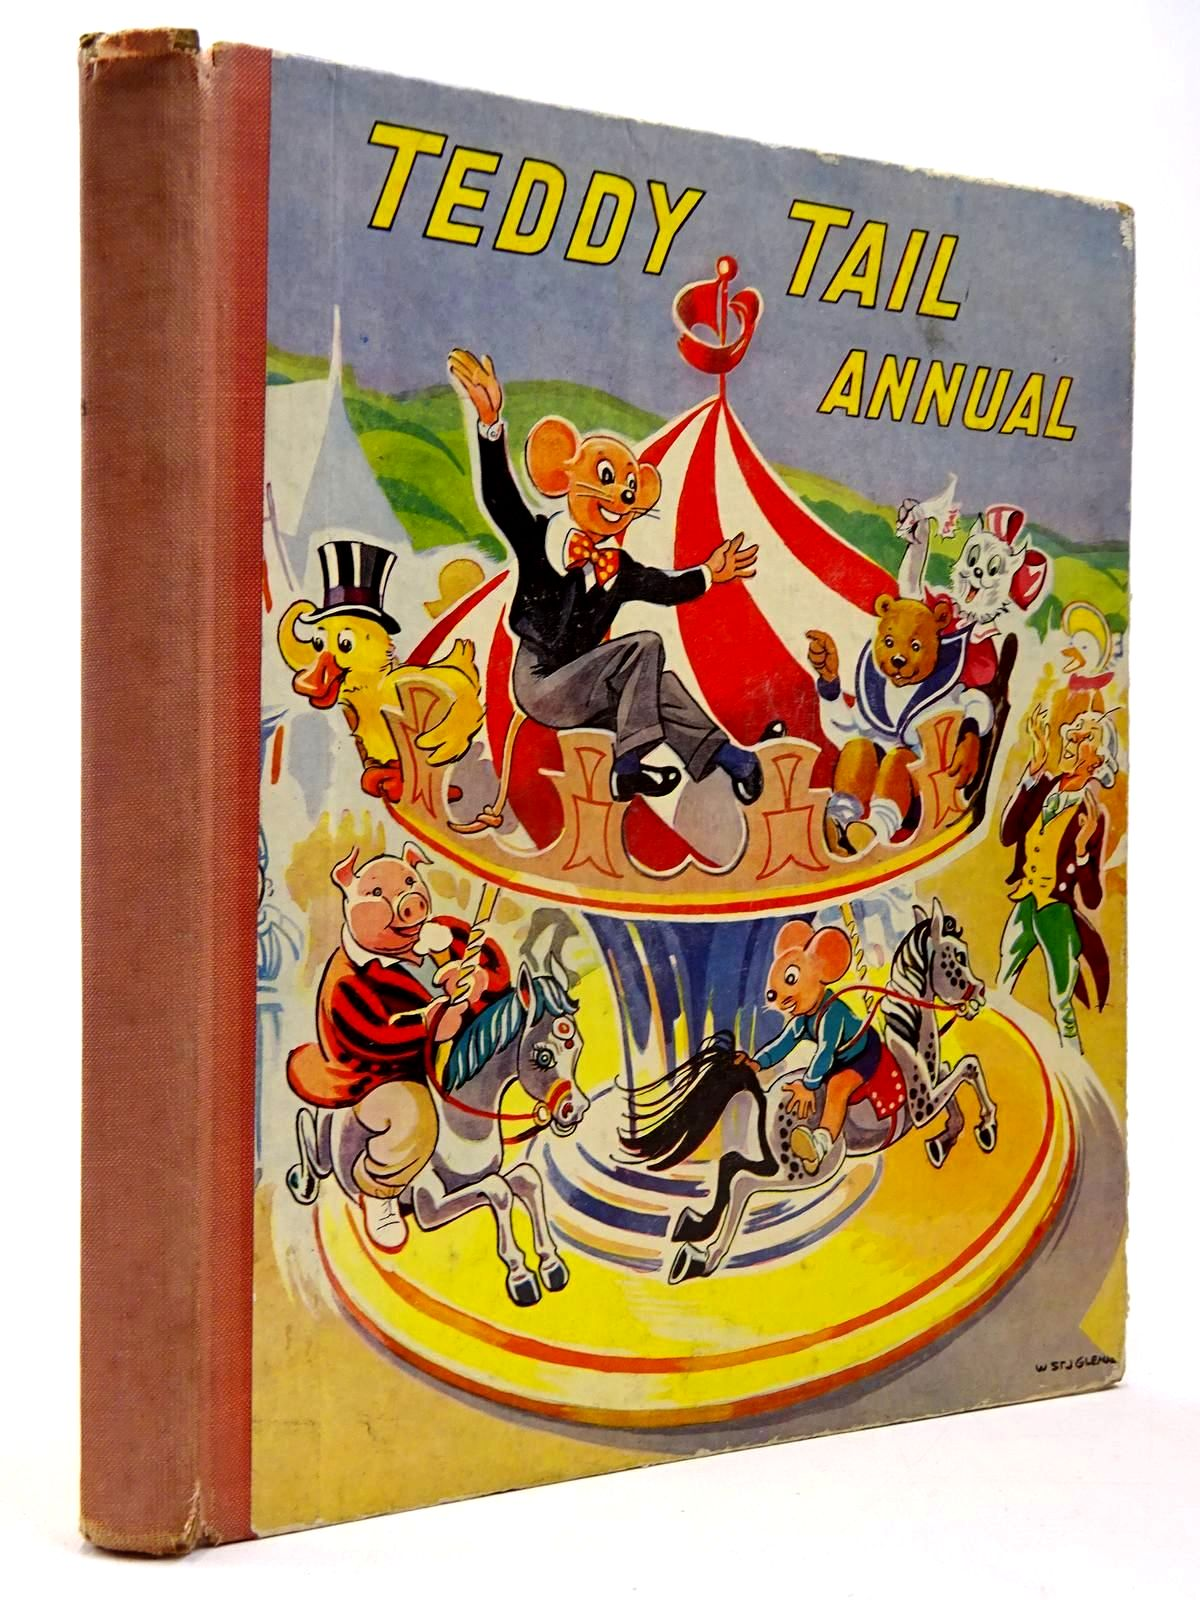 Photo of TEDDY TAIL ANNUAL published by Juvenile Productions Ltd. (STOCK CODE: 2130322)  for sale by Stella & Rose's Books